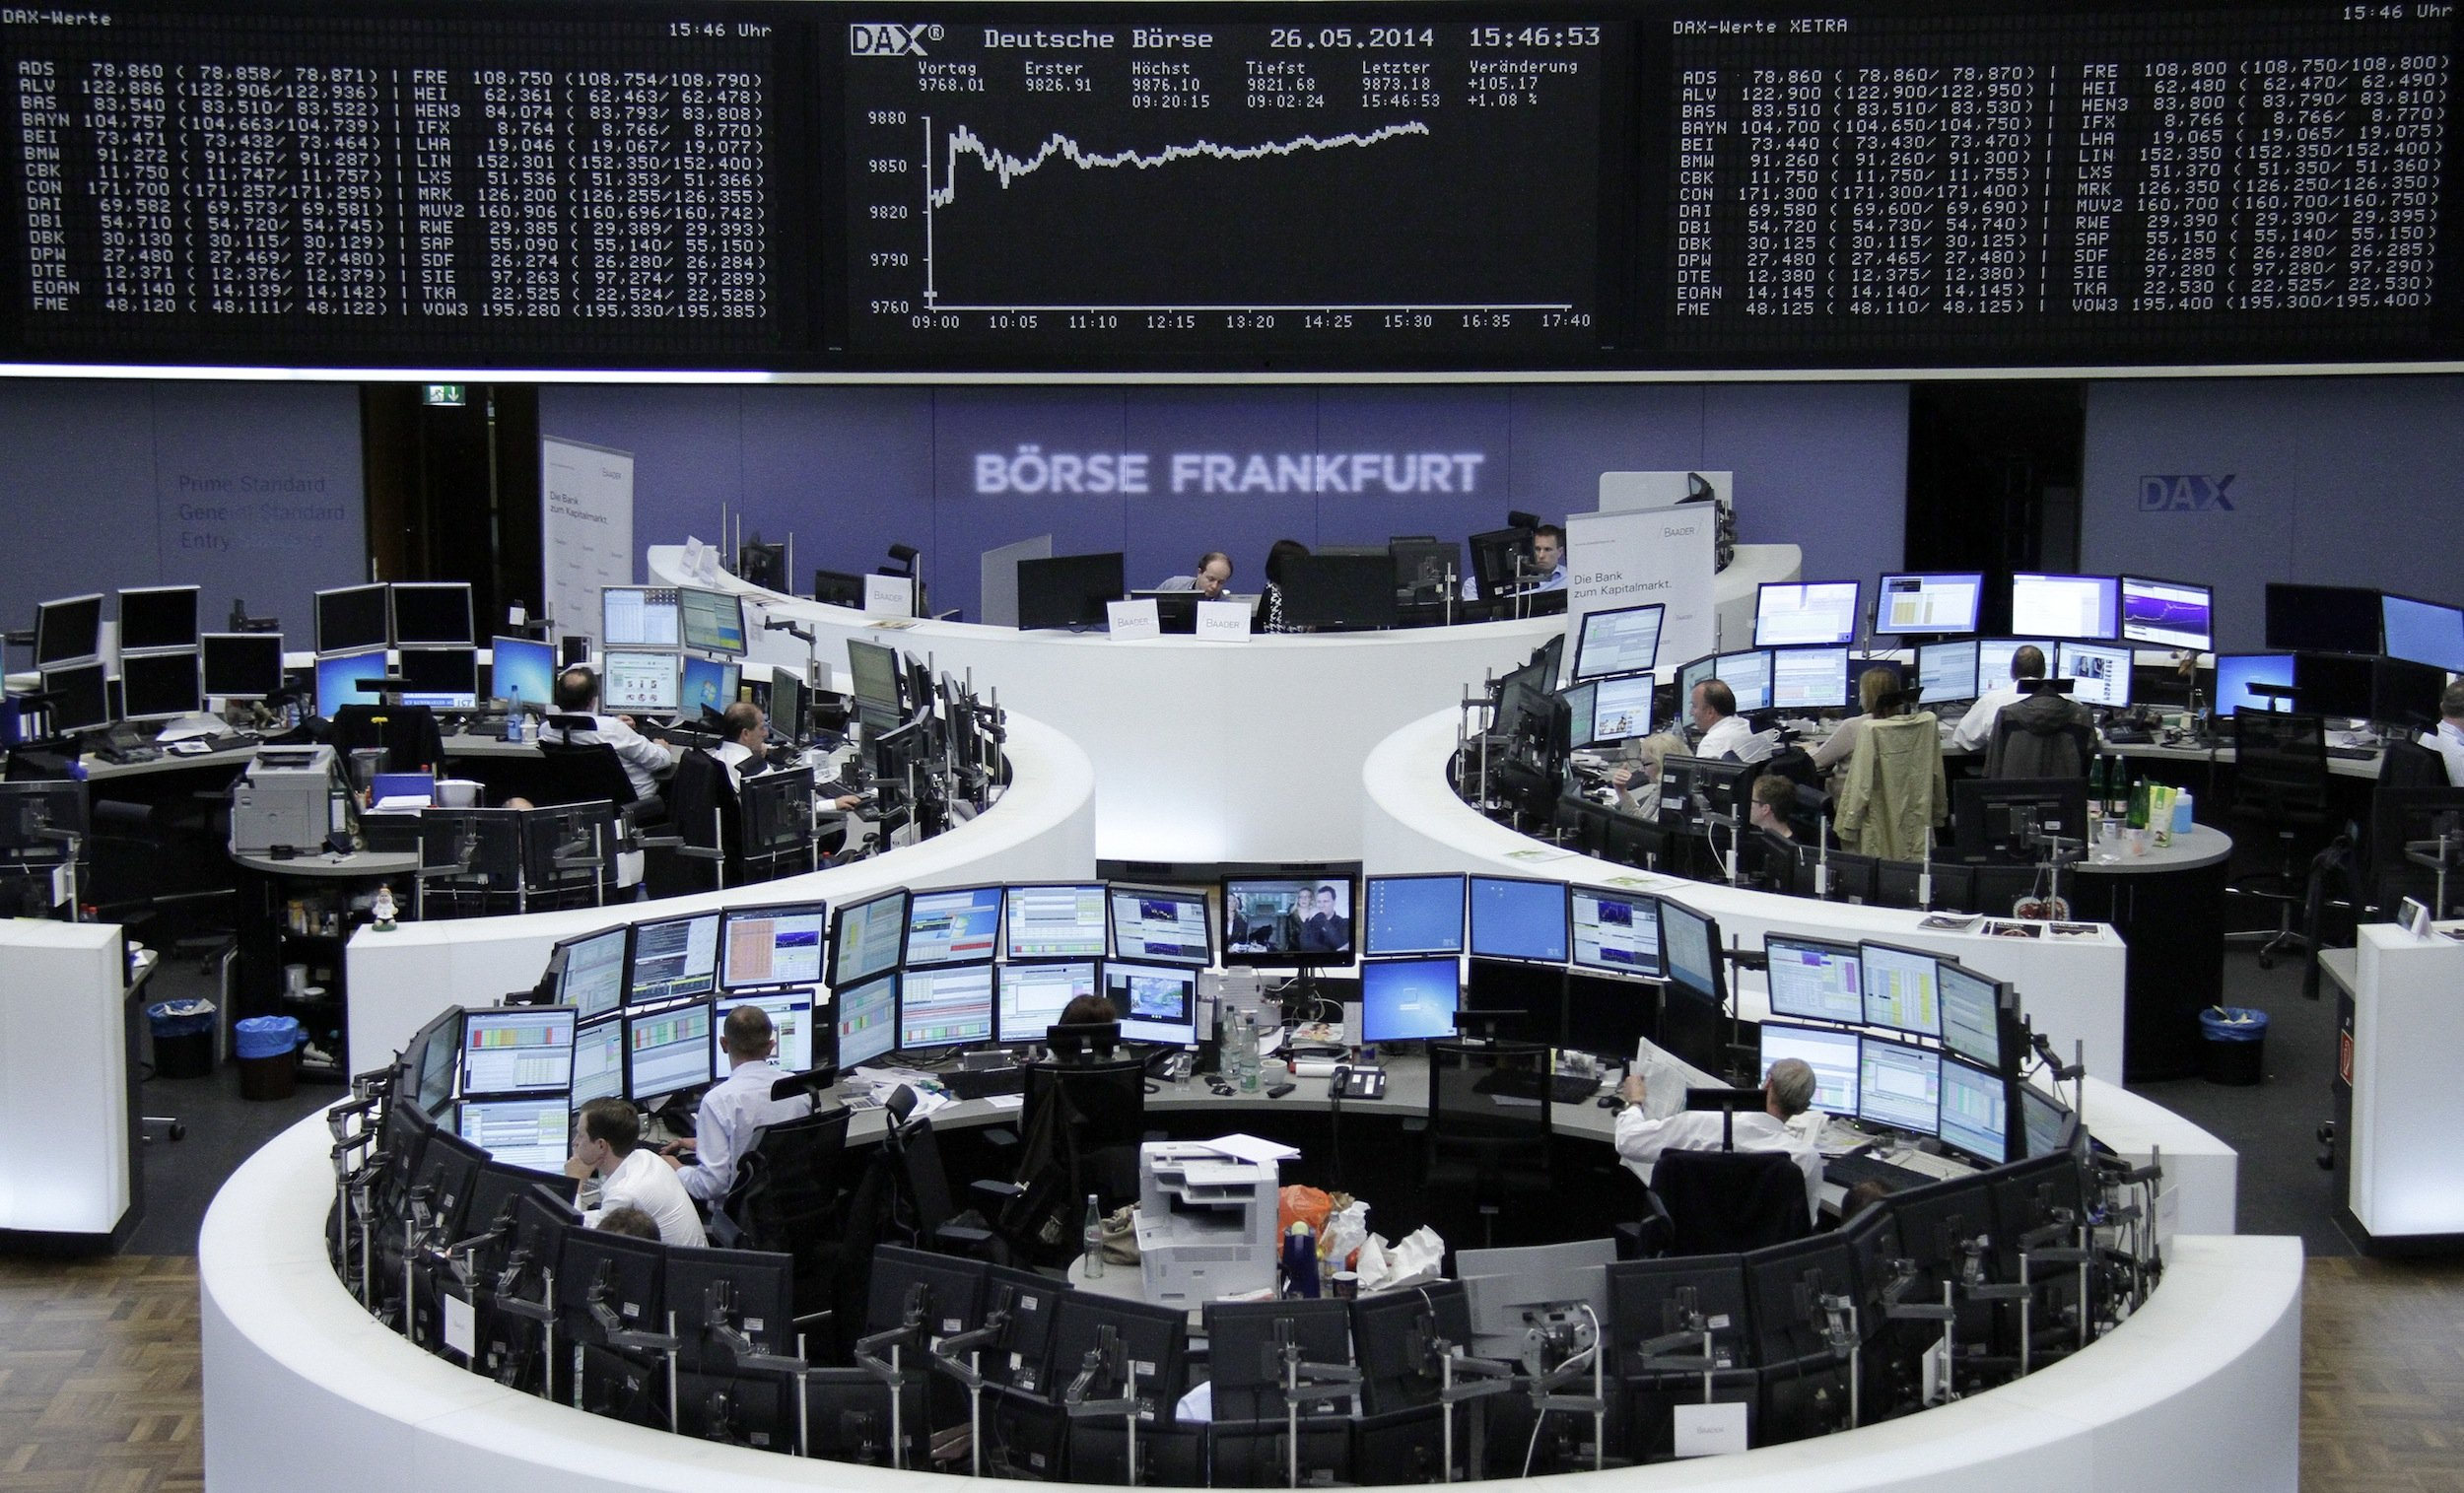 The Frankfurt stock exchange